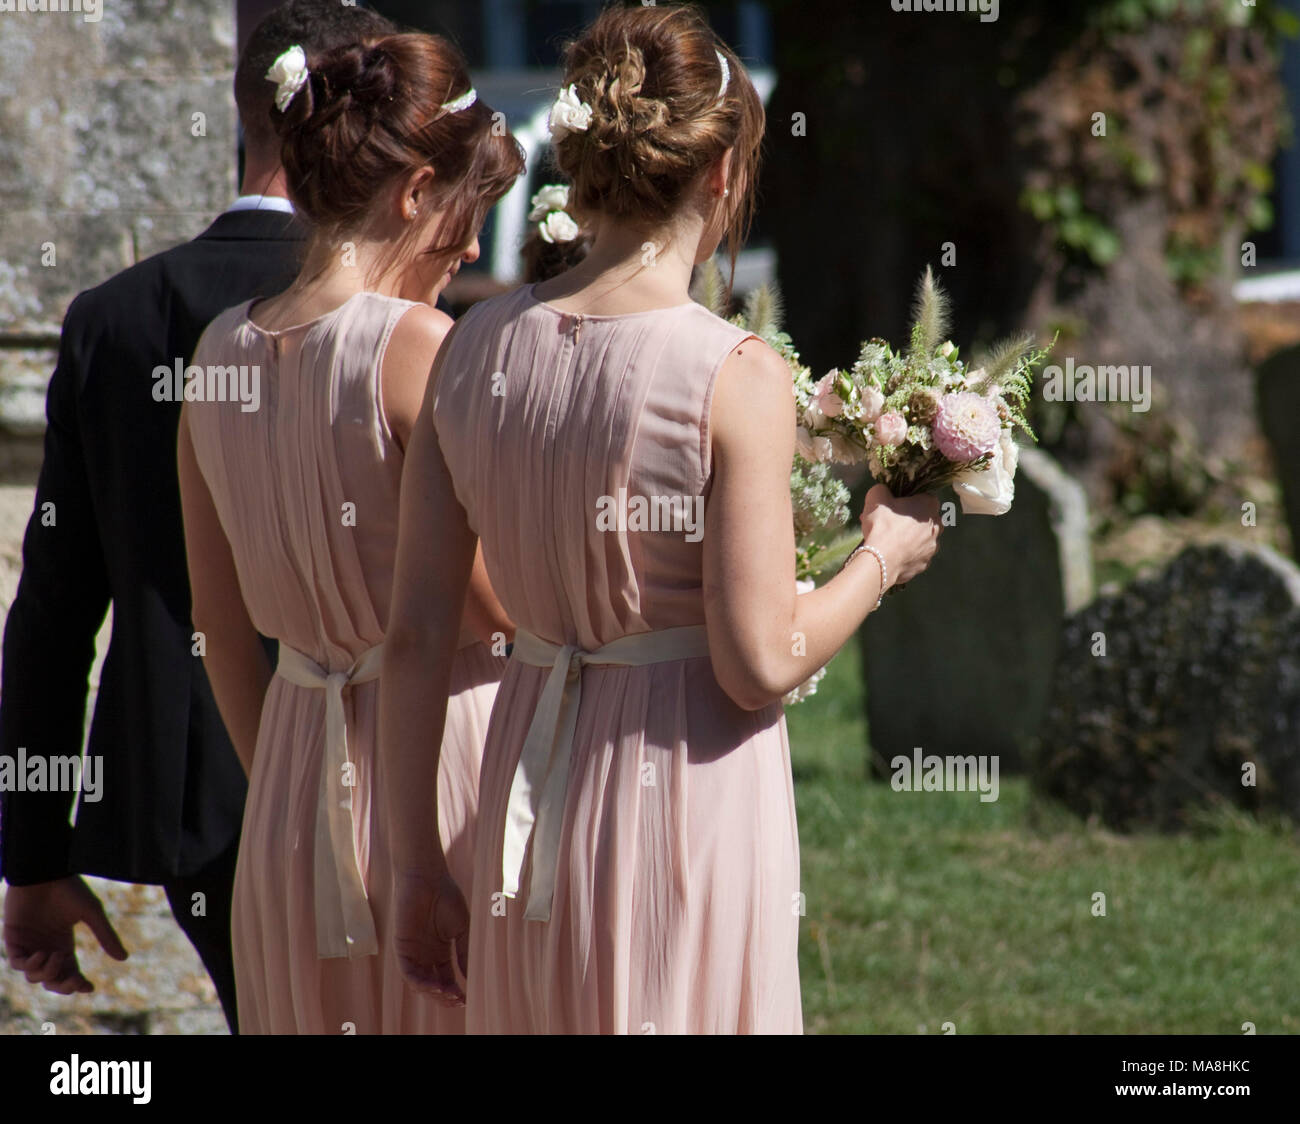 Rear view of two adult bridesmaids in muted pink dresses leaving a church wedding - Stock Image